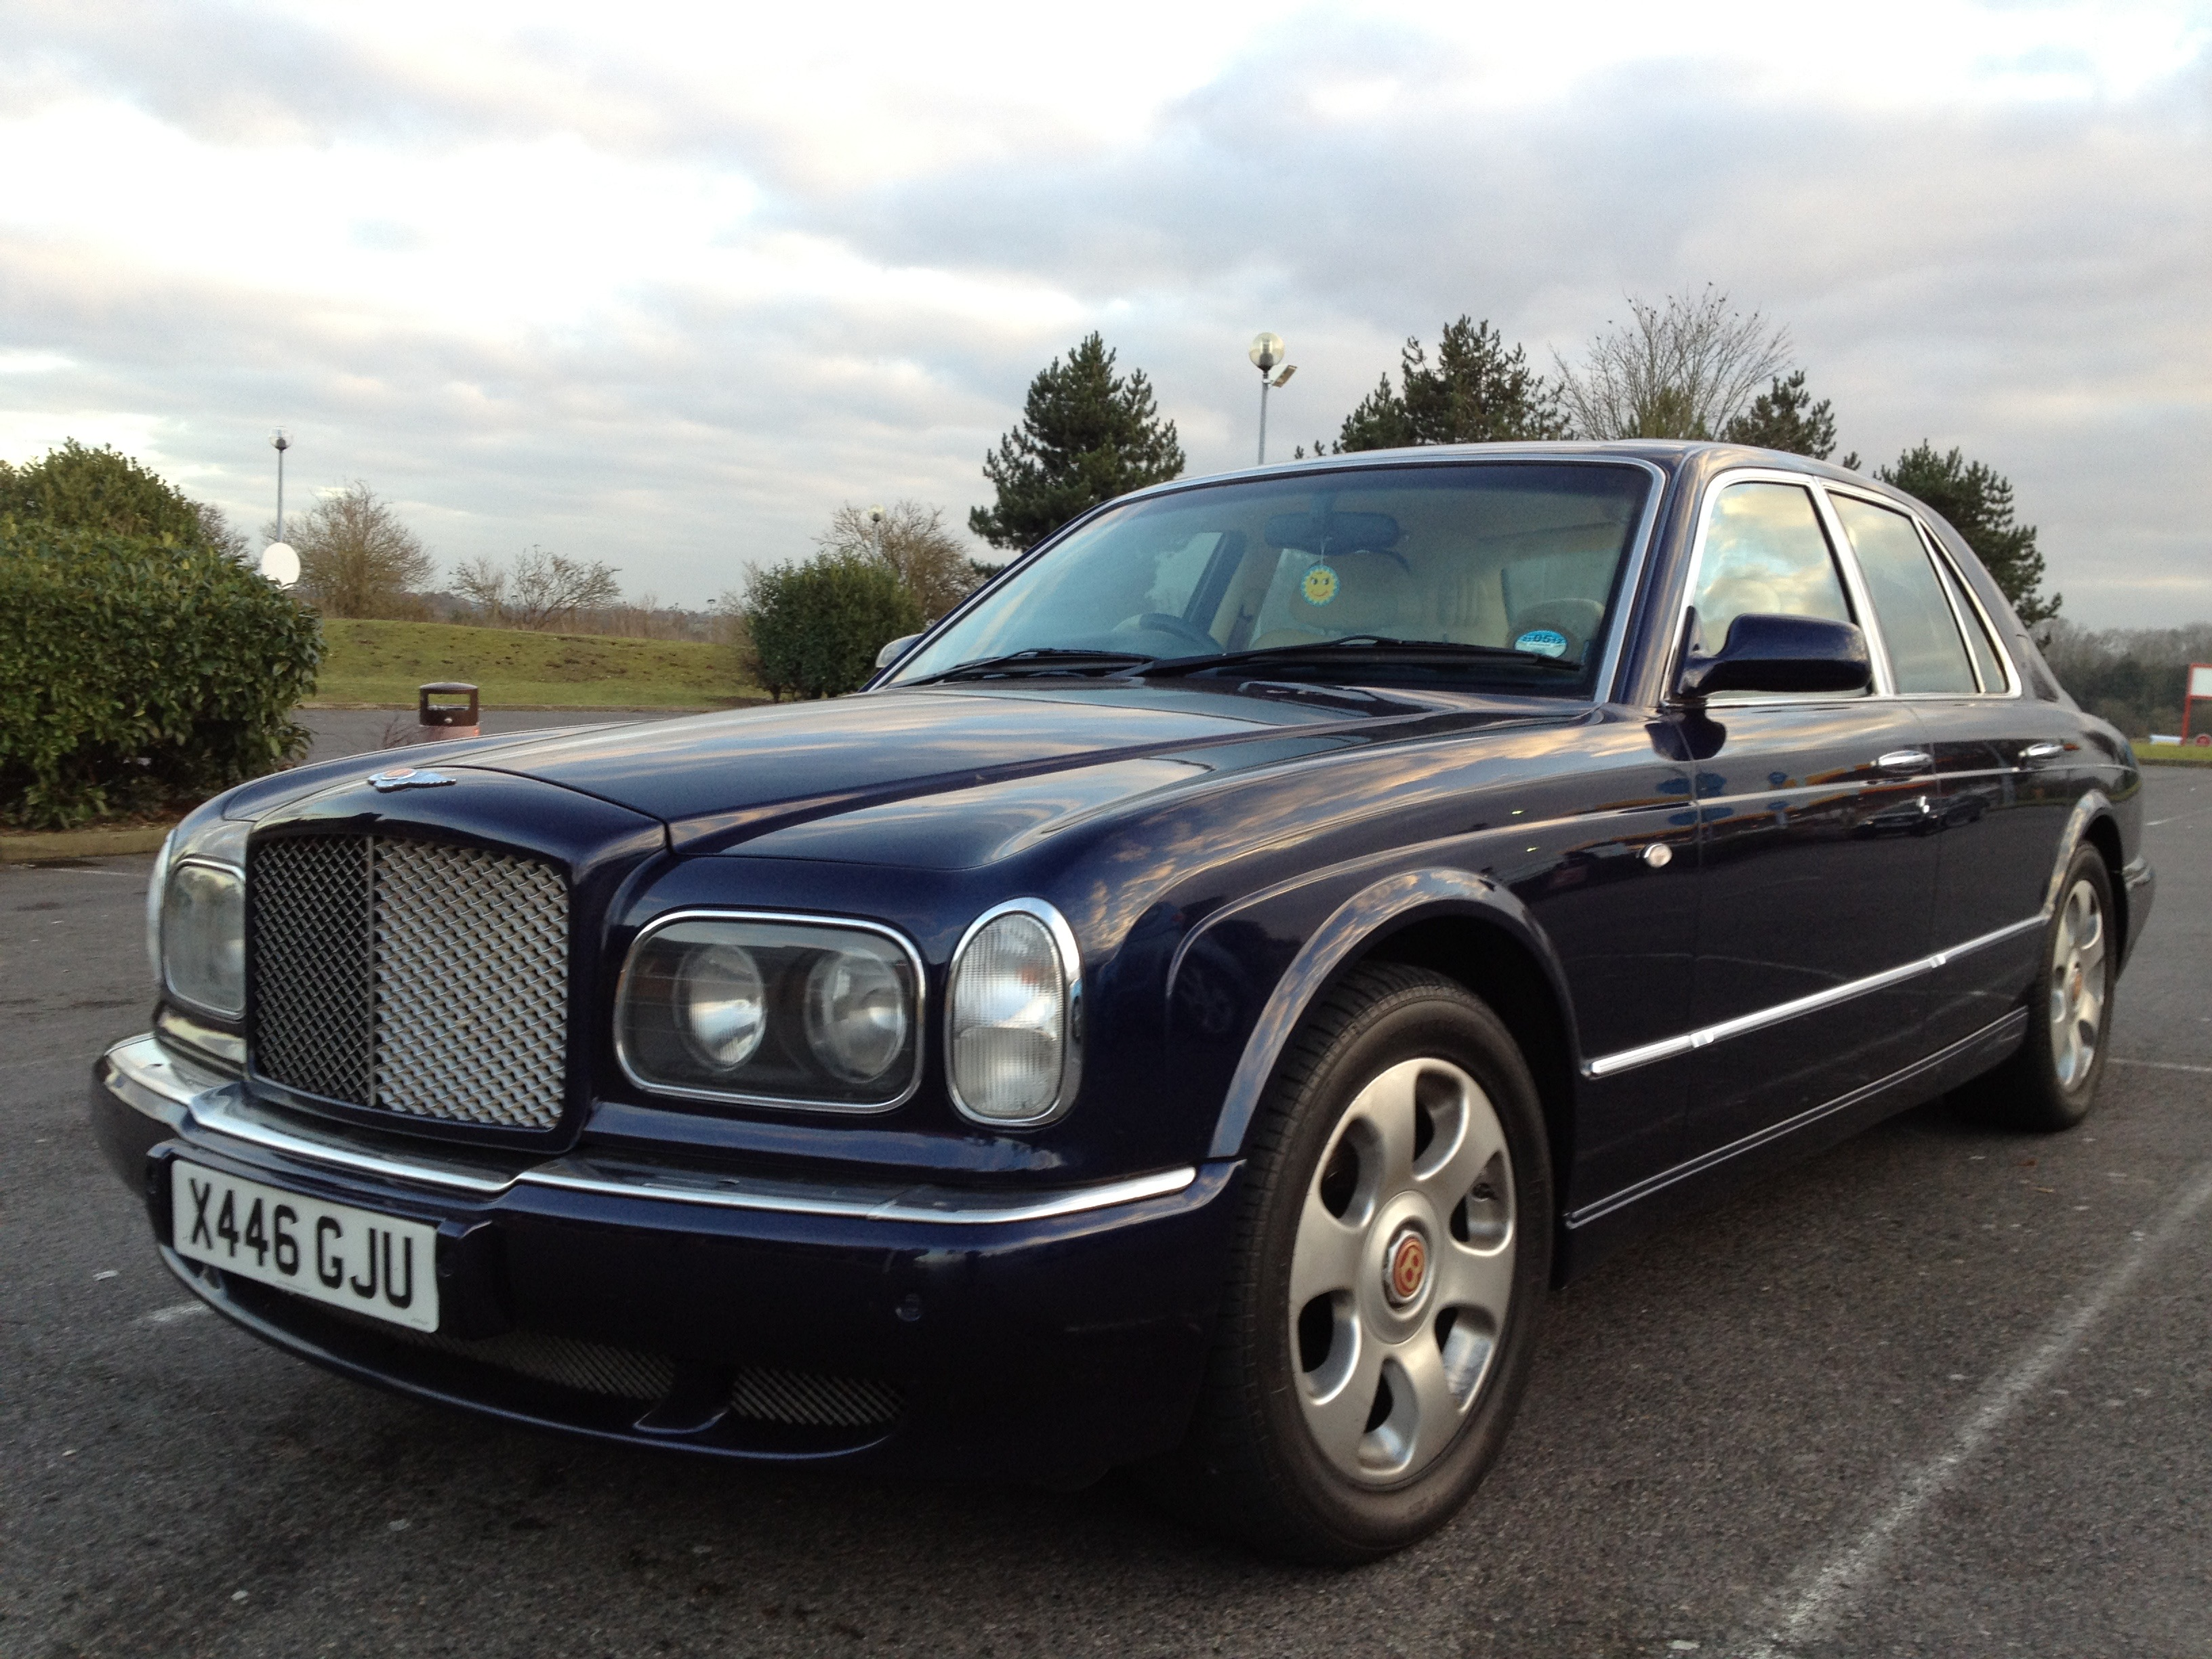 A dark blue Bentley Arnage